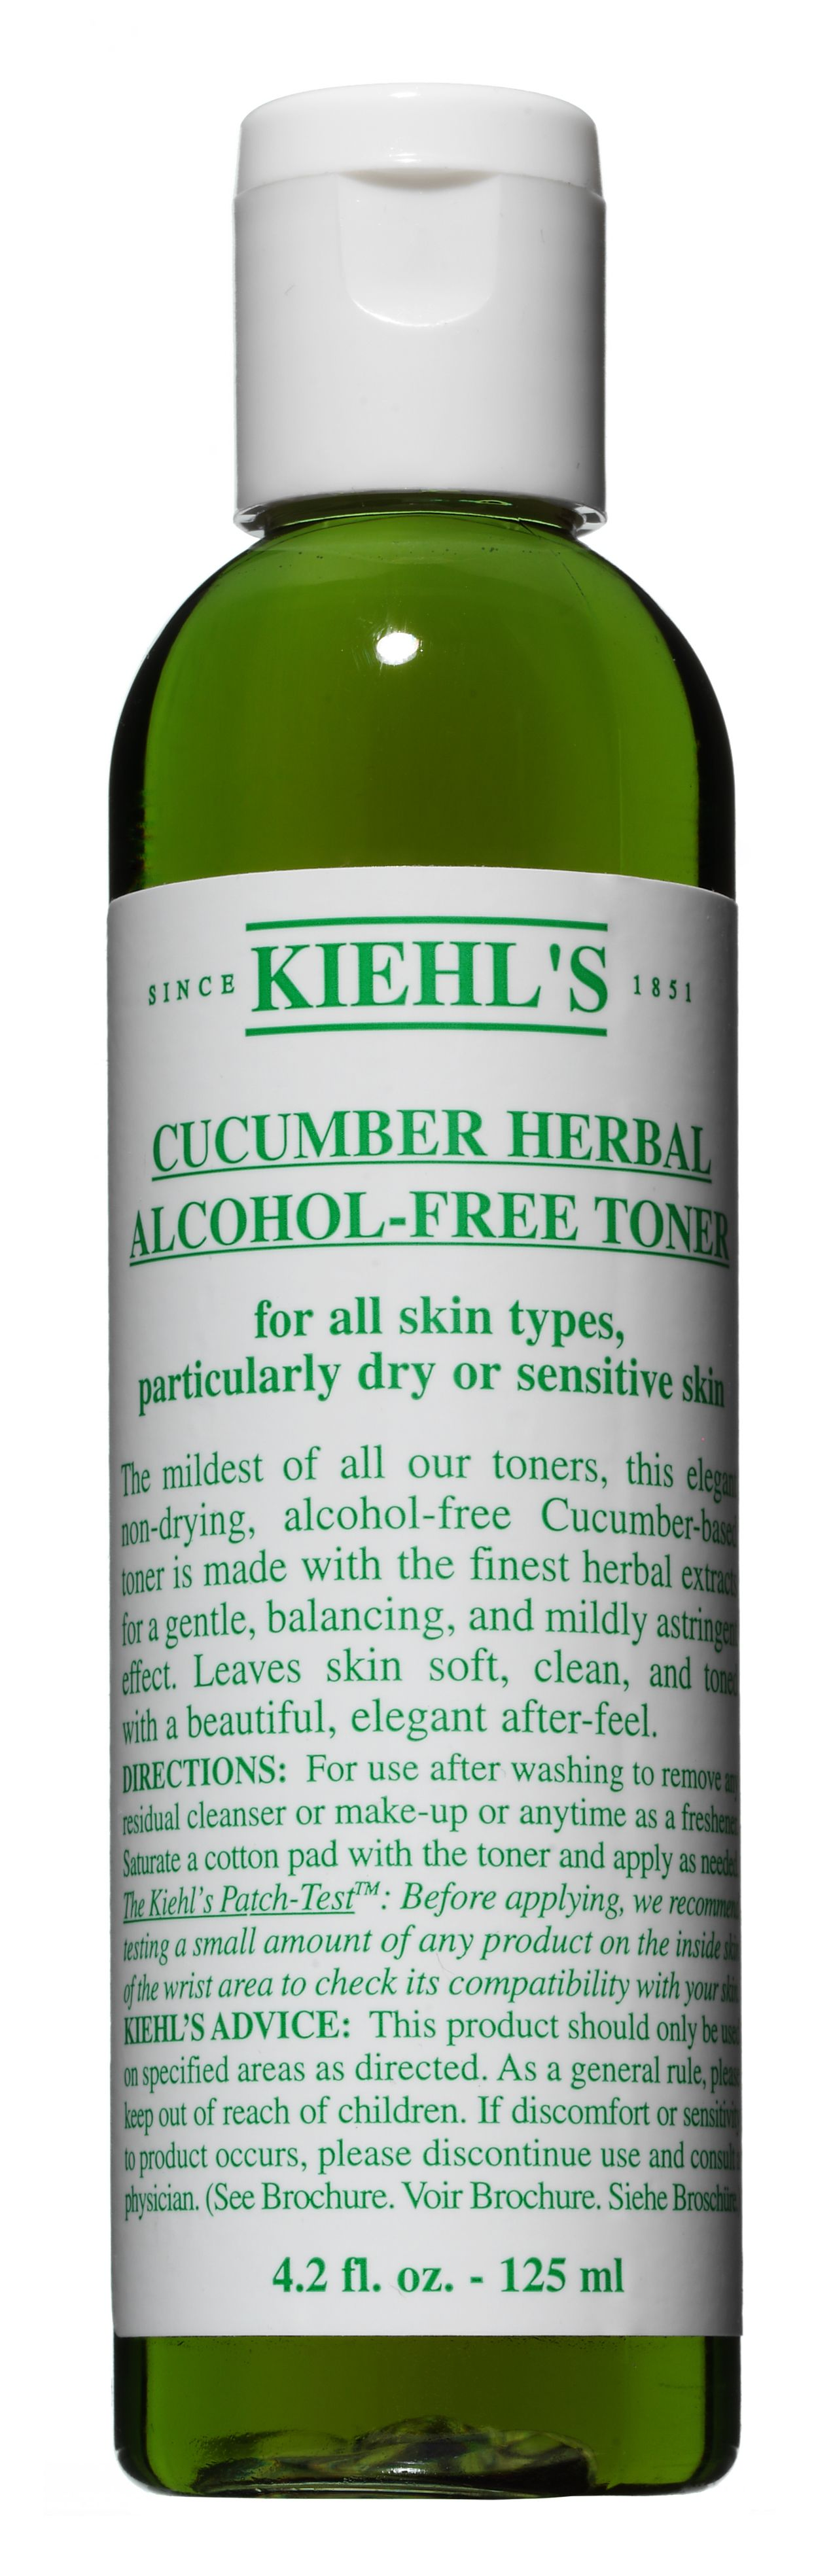 Cucumber Herbal Alcohol-Free Toner, 250ml